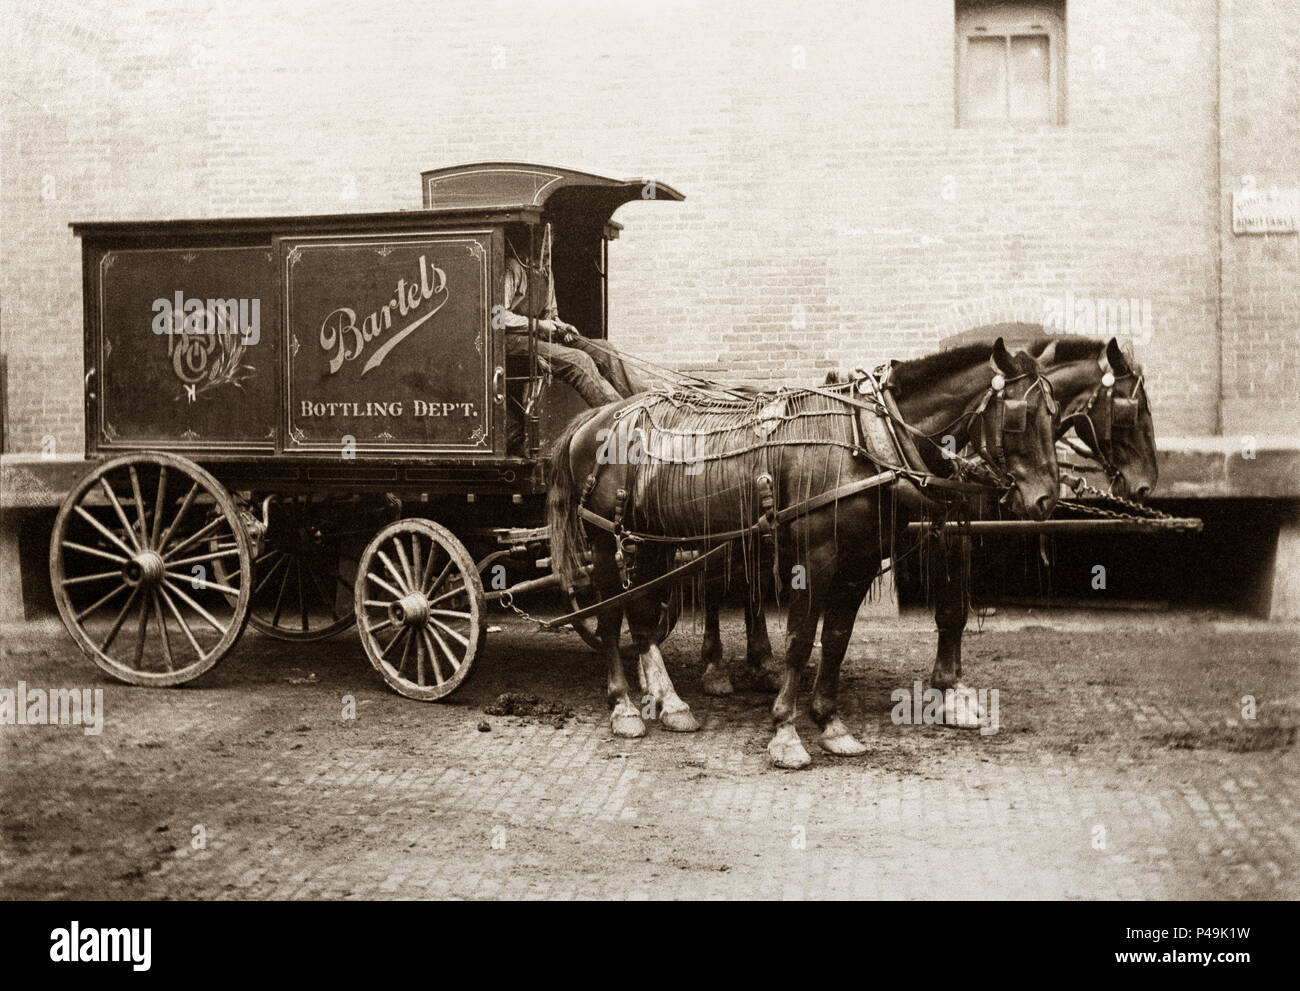 This is a two horse Delivery wagon of the Bartels Brewery (Beer) (Bartels Bottling) Edwardsville Pennsylvania during the early 1900s.This brewery was in existence from 1898-1968. Brewery operations were shut down by National Prohibition in the years of 1920-1933 .The Bartels label was acquired by the Lion Brewing Company of Wilkes-Barre, and is still sold locally. Lion Brewery, Inc, in Wilkes-Barre, Pennsylvania, is one of the oldest breweries still in operation within Pennsylvania. Its beers and sodas are sold in Pennsylvania and neighboring states. Stock Photo